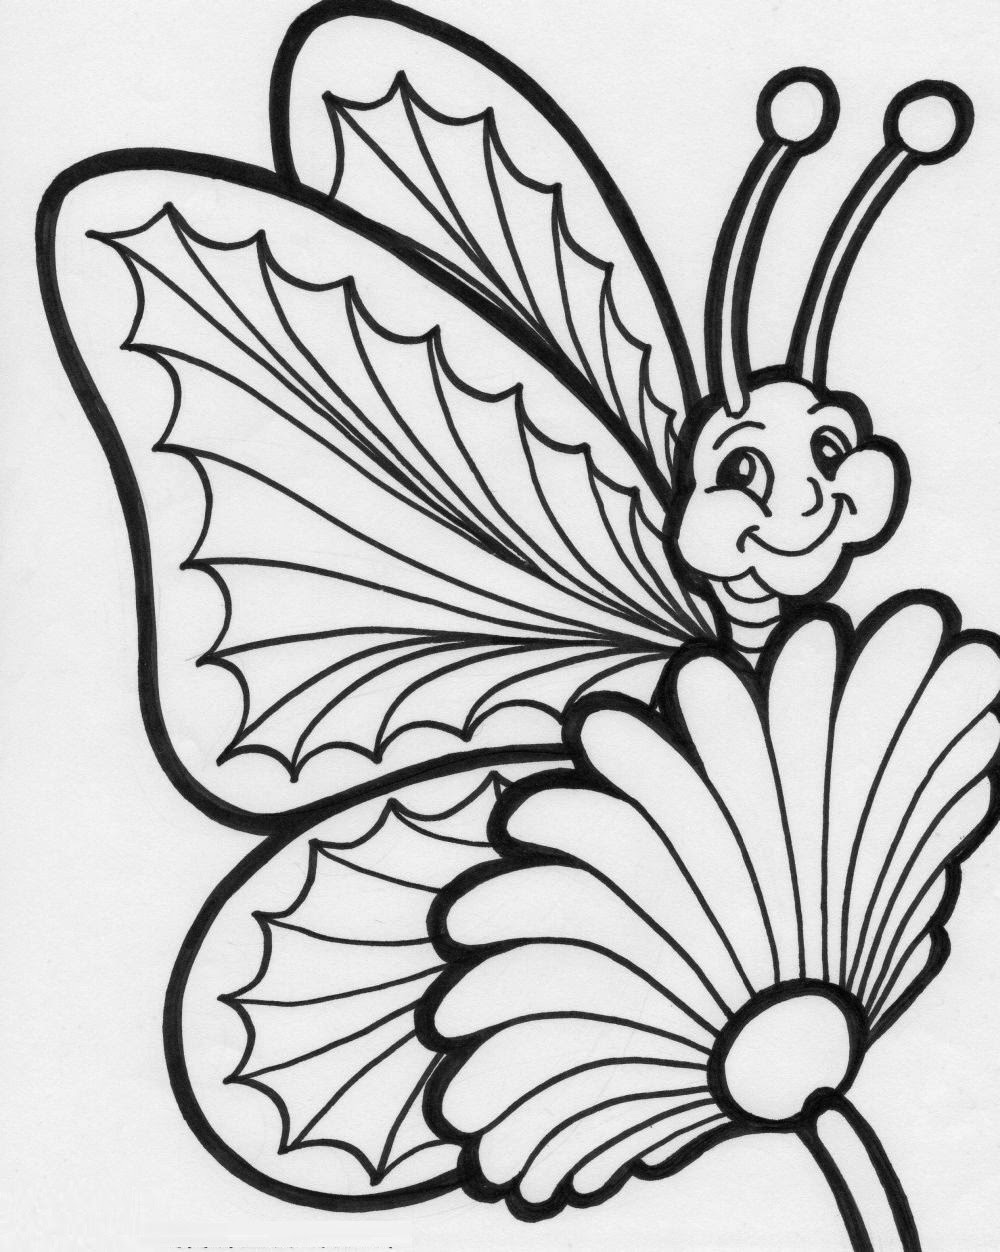 coloring pages of butterflies for adults - colours drawing wallpaper beautiful colour butterflies